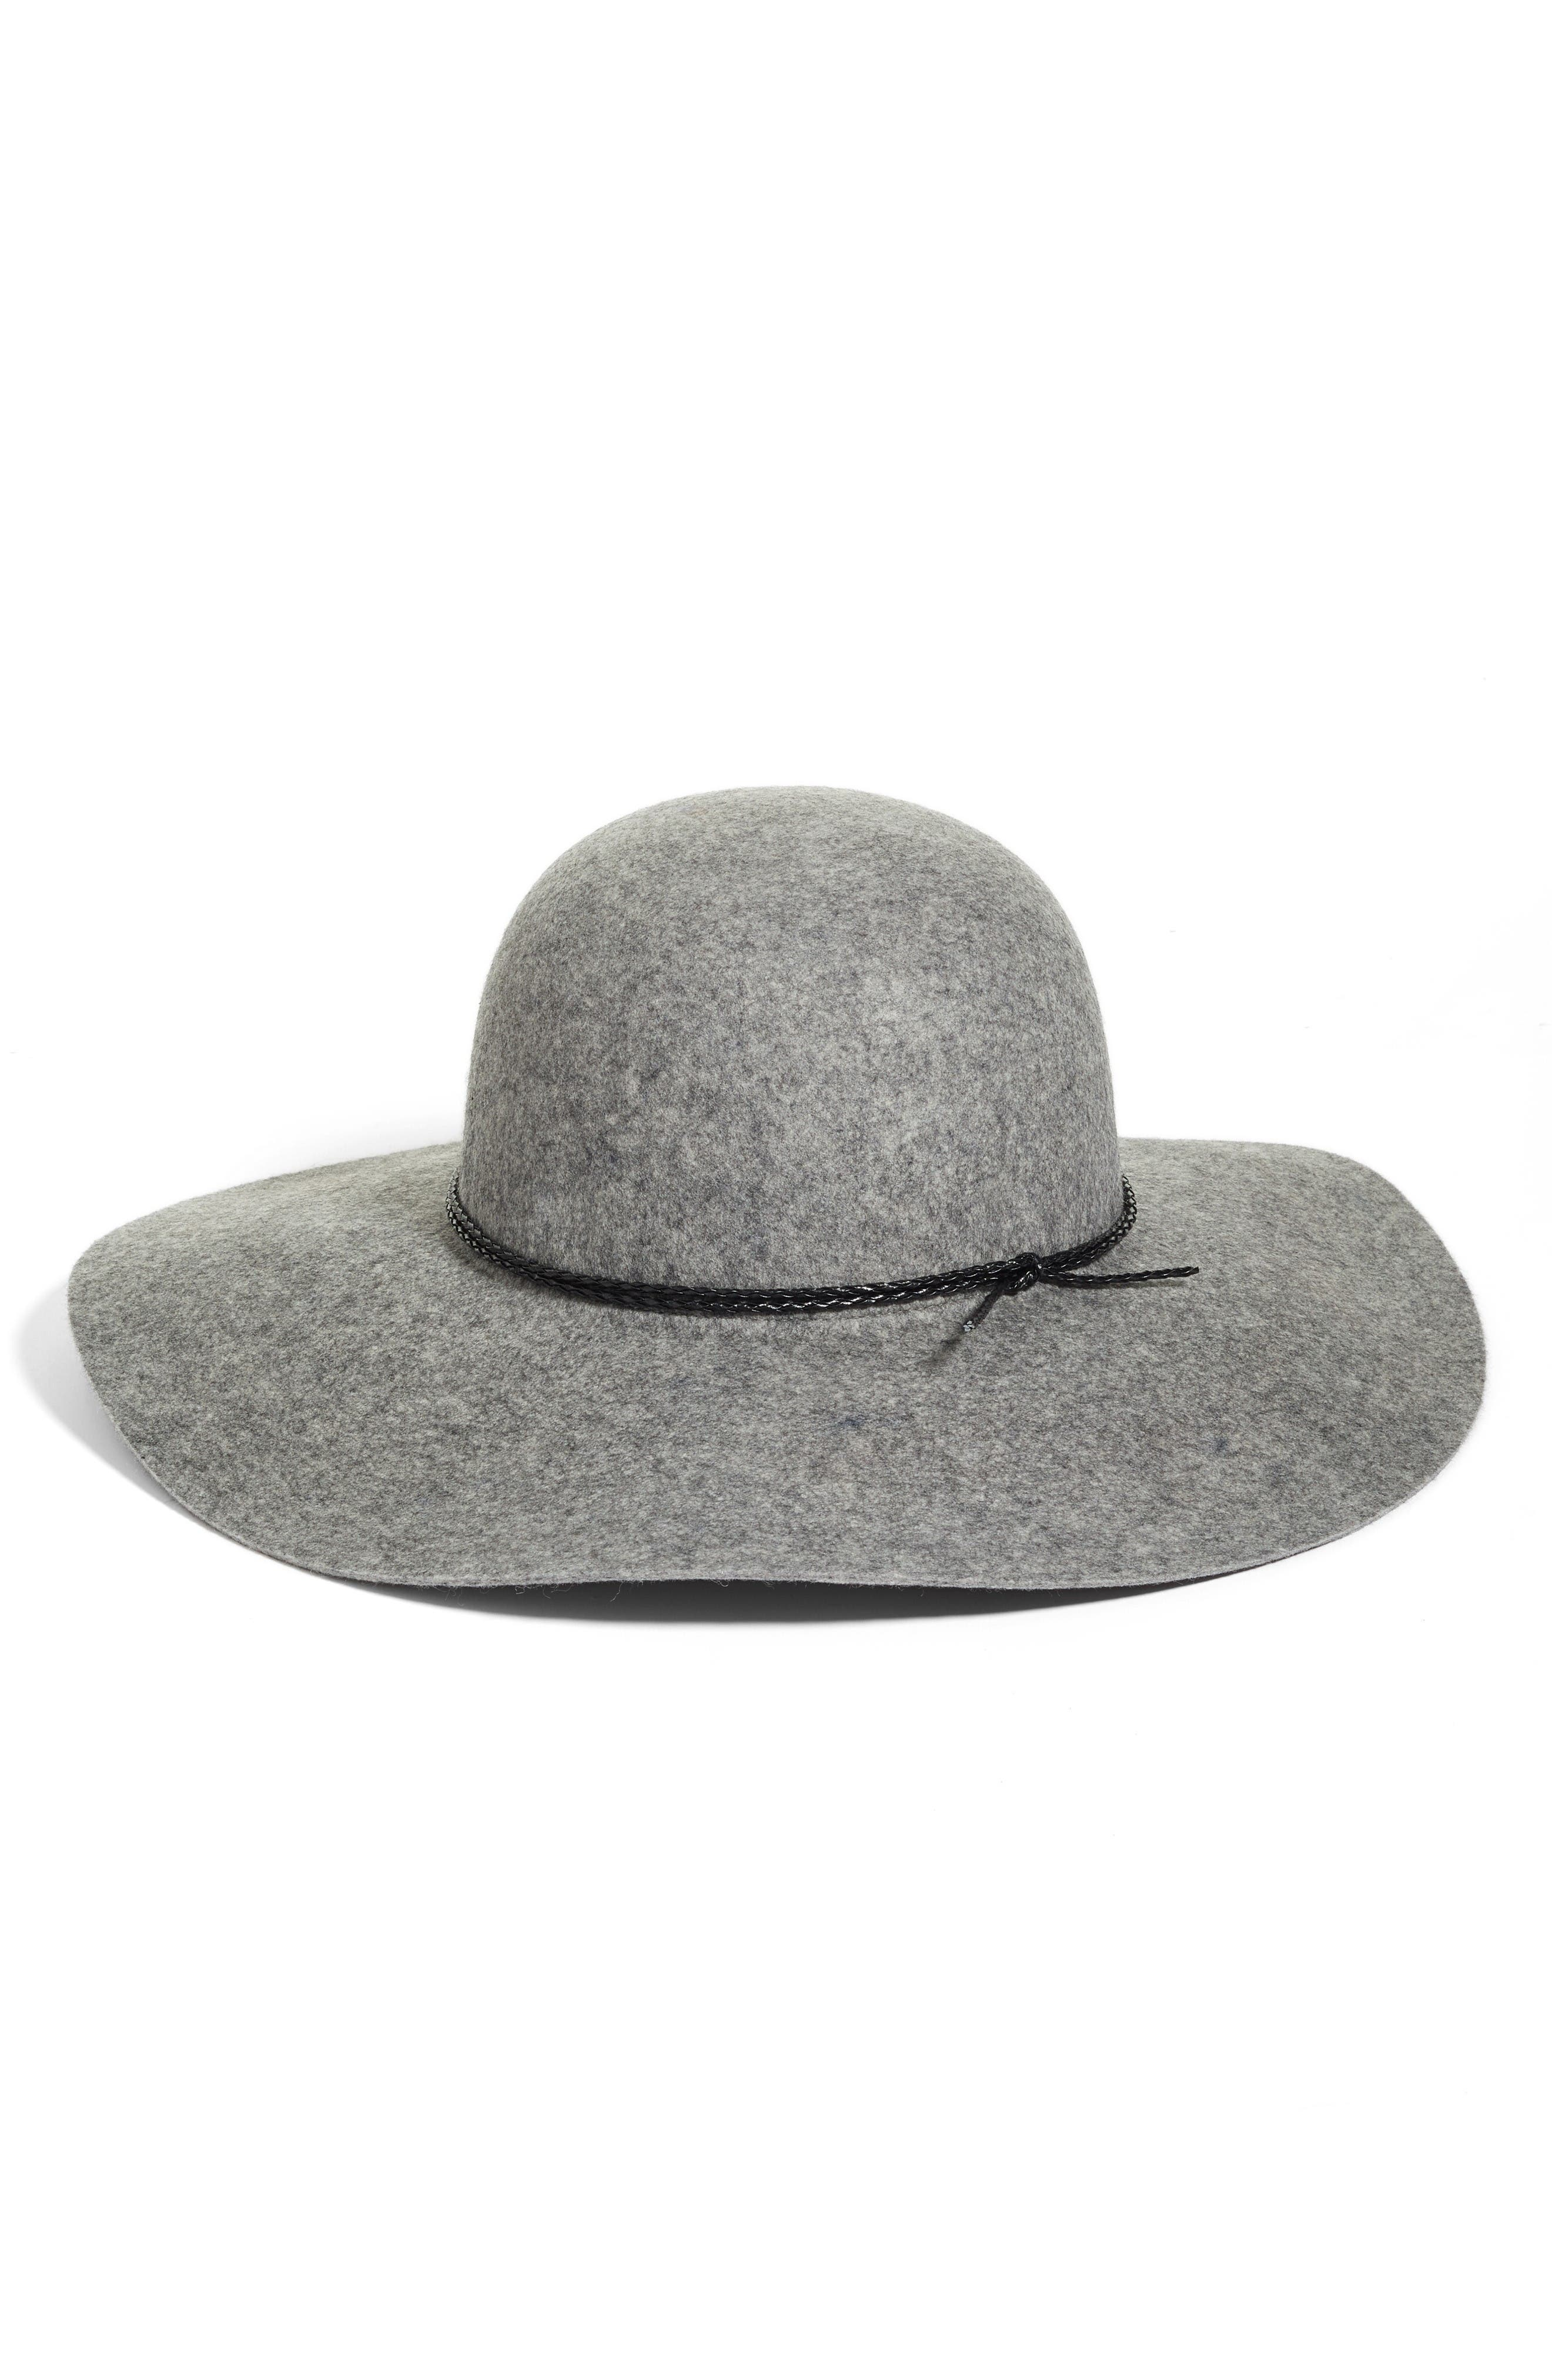 Wool Floppy Hat,                         Main,                         color, Grey Light Heather